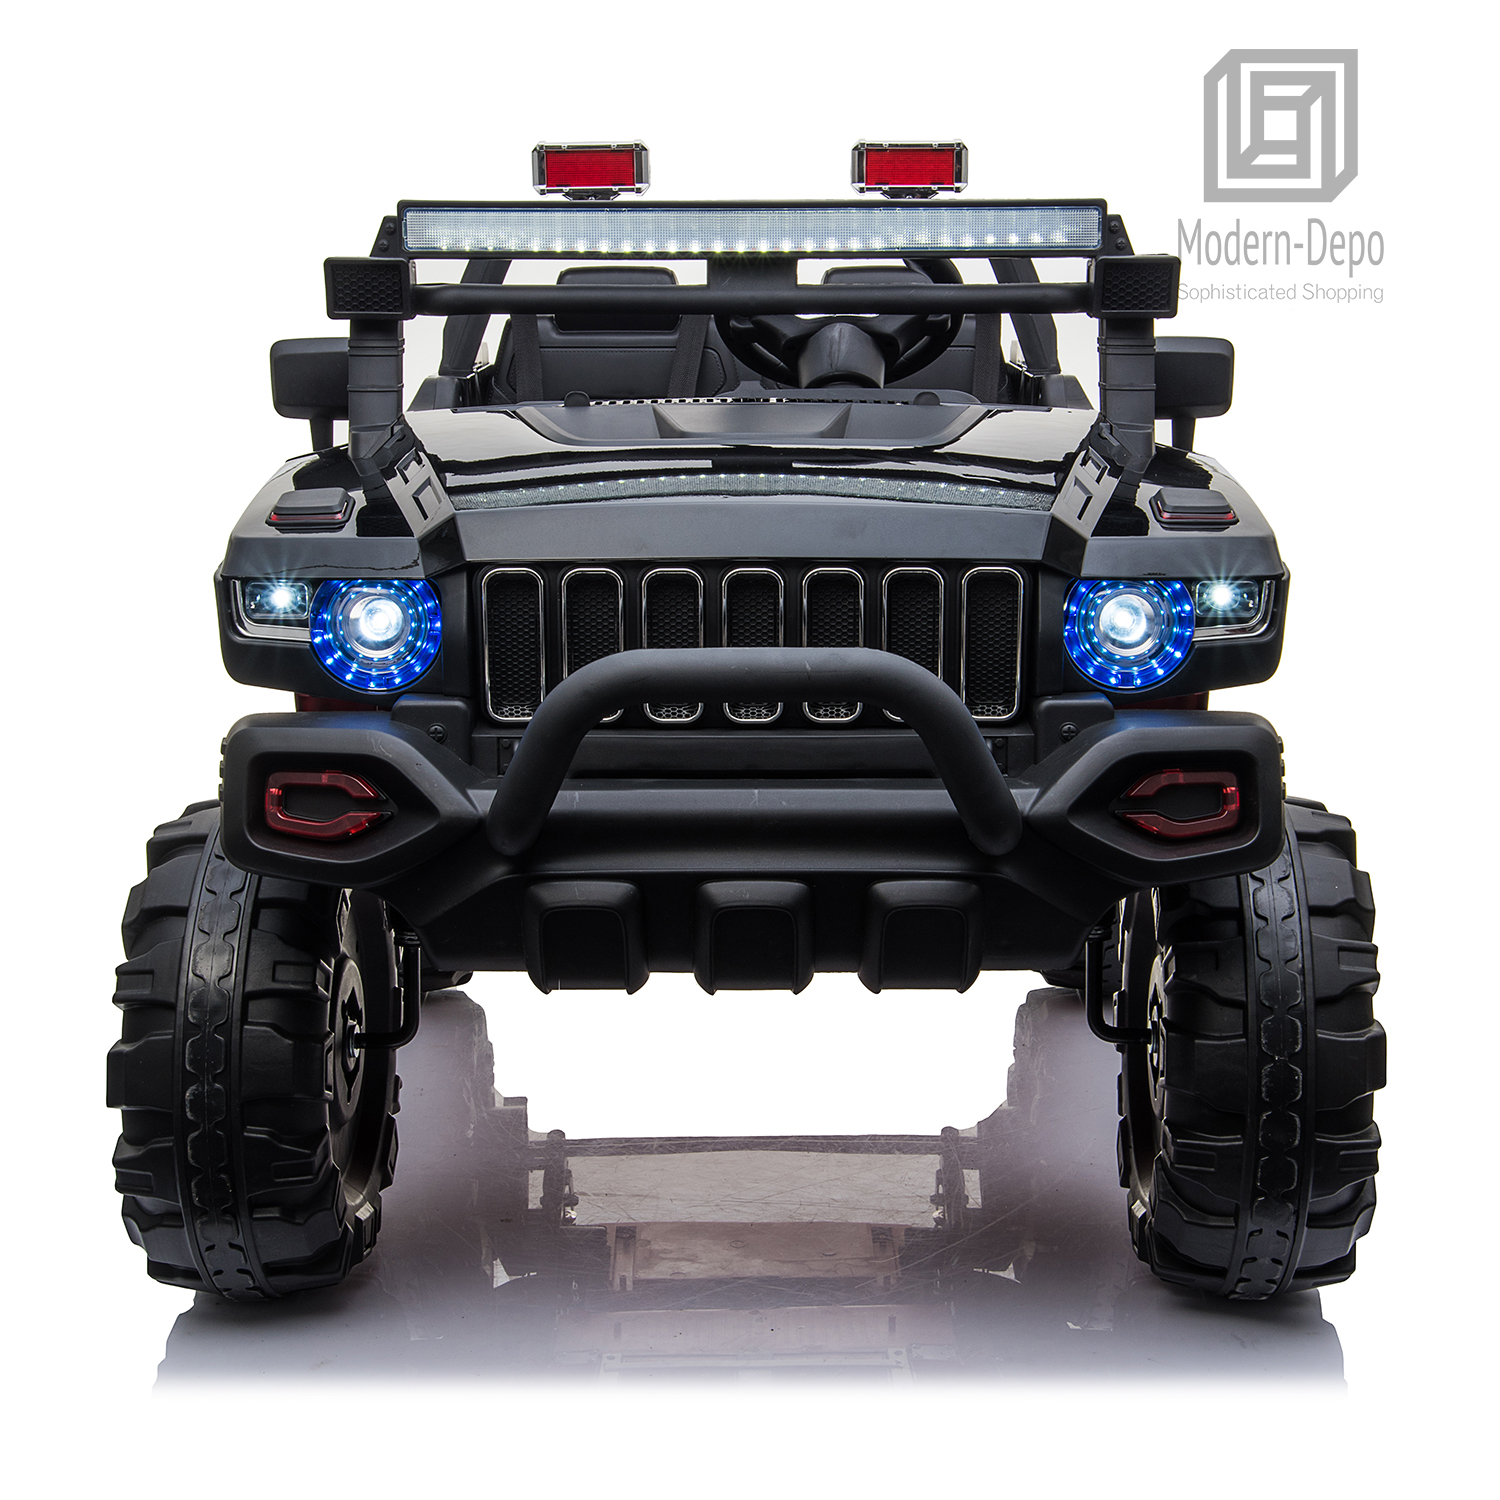 2-Seaters-4-4-Off-Road-Electric-12V-Ride-on-Car-with-Remote-Control miniature 17